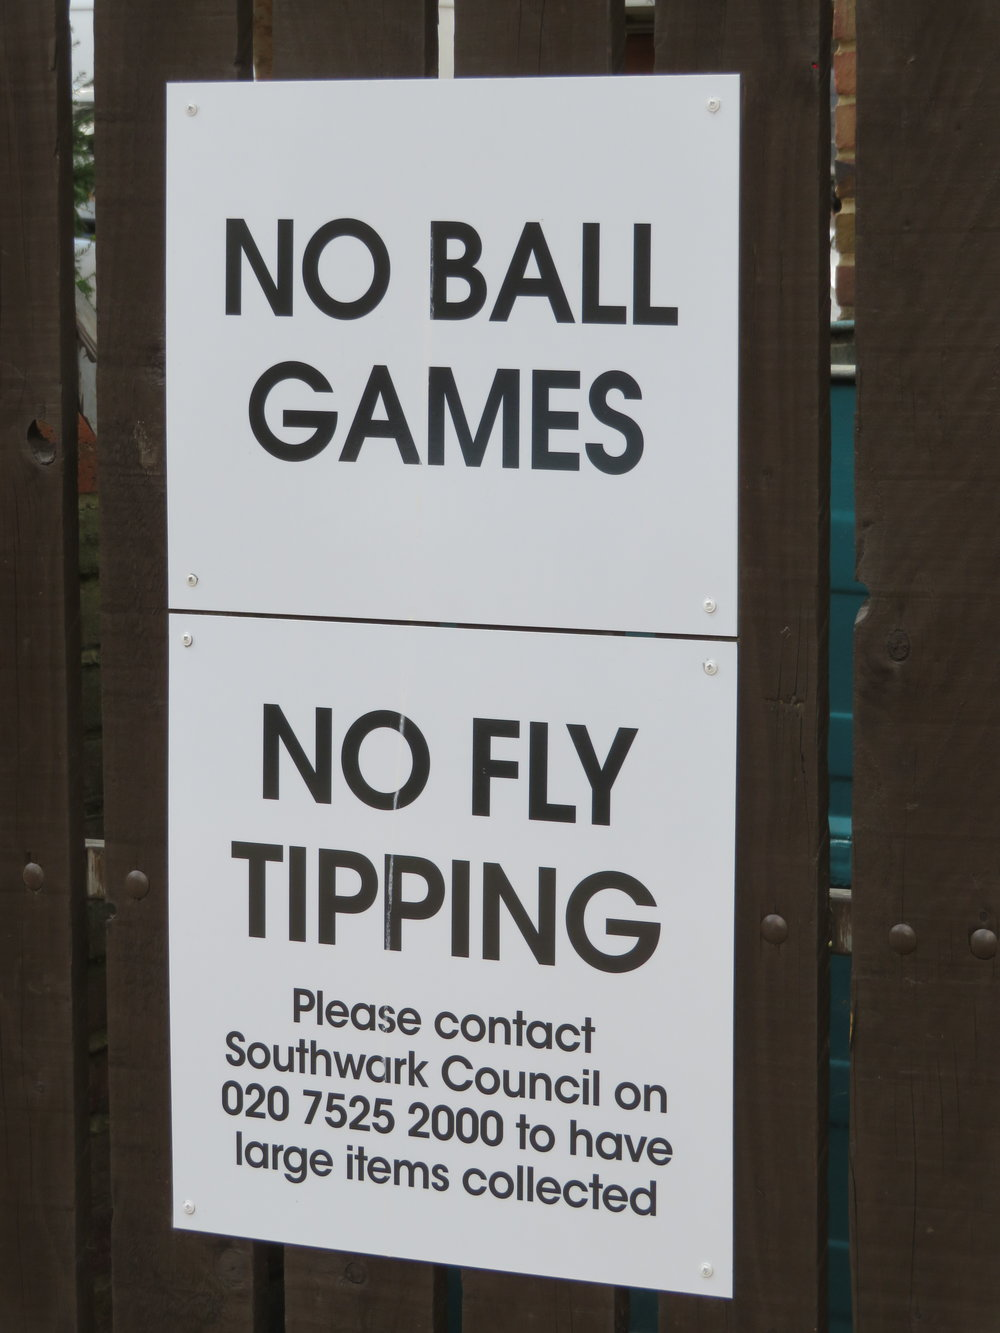 It was easy to figure out 'no ball games' in this parking lot, but 'no fly tipping' had us scratching our heads. We later learned 'fly tipping' is illegal dumping of trash.